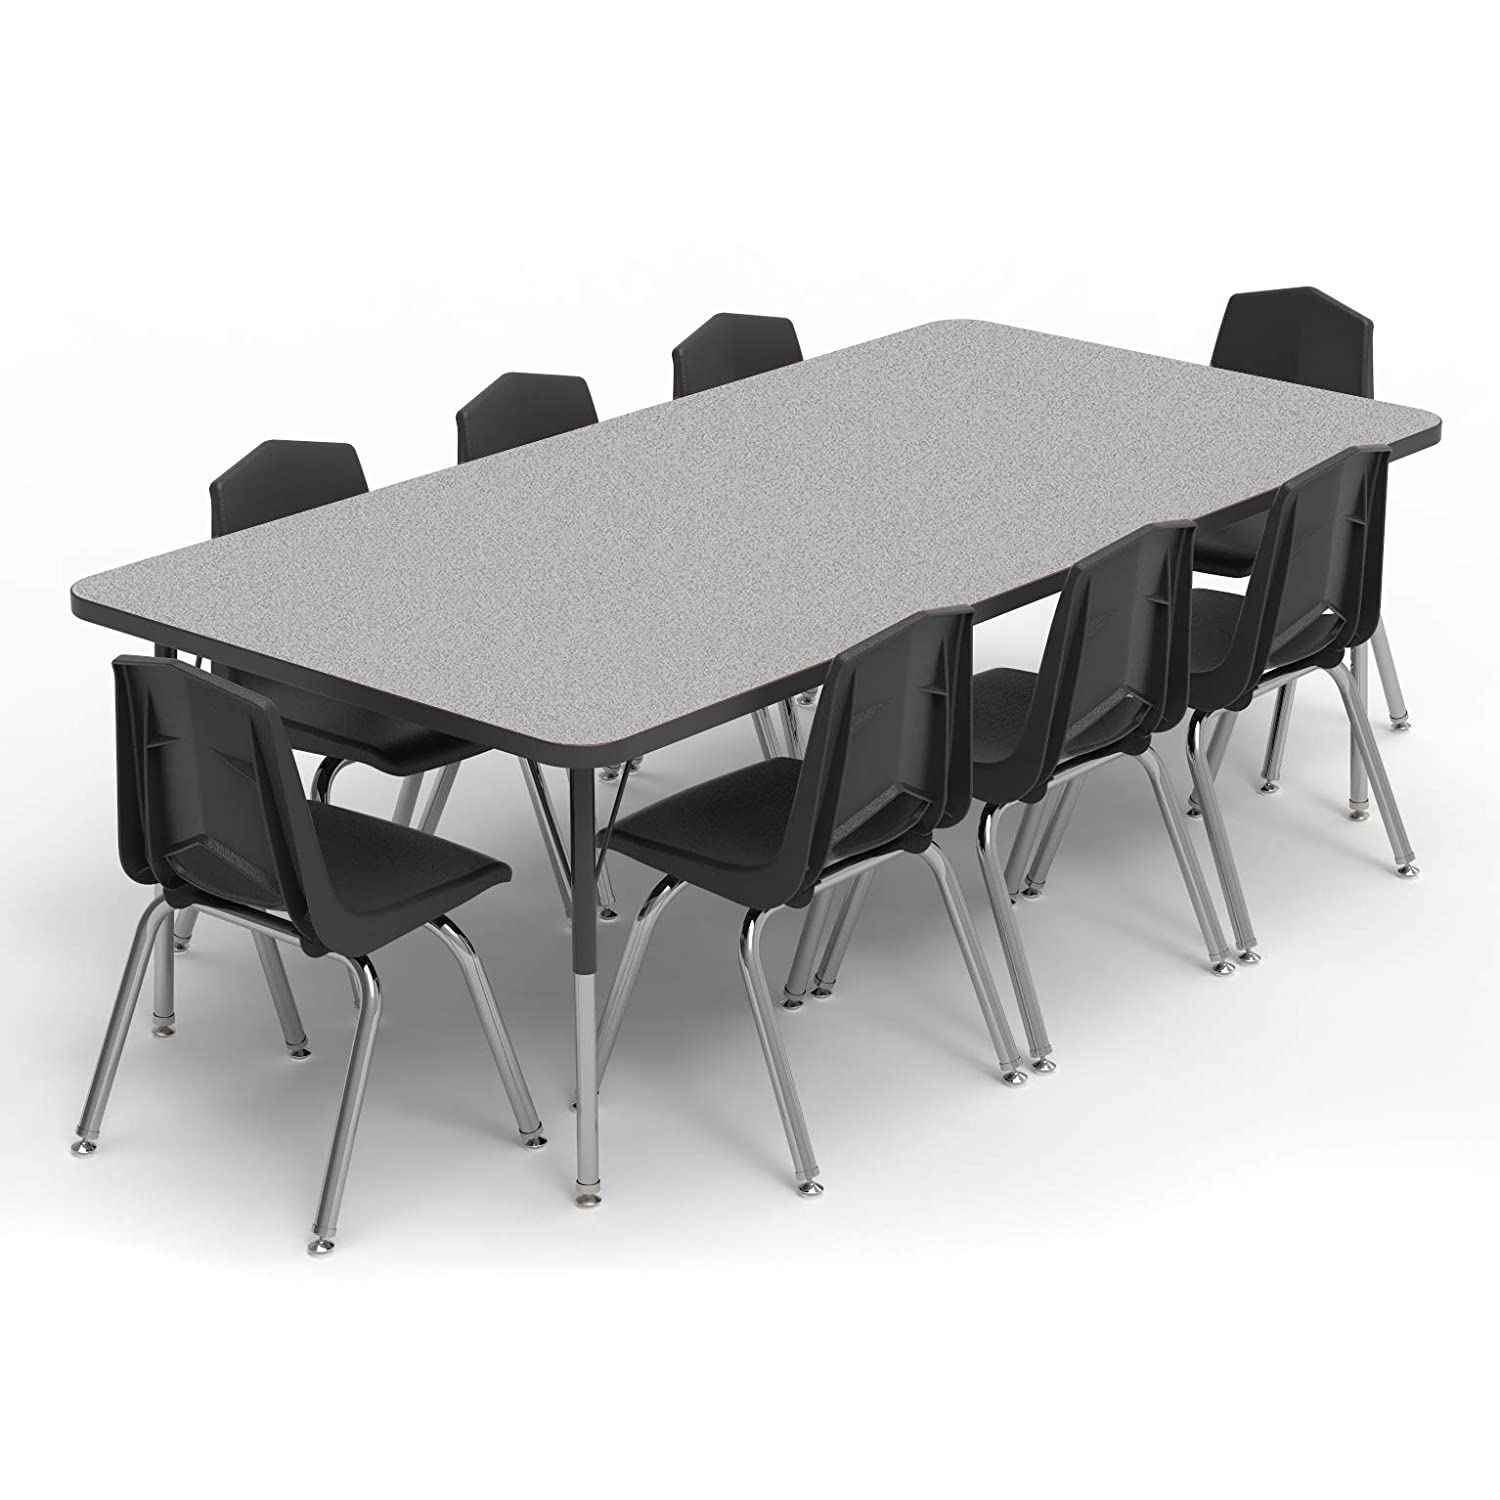 21-30 Standard Size Legs Gray Nebula-Top Navy-Edge Marco Group 36 Round Shaped Classroom Table Adjustable Height